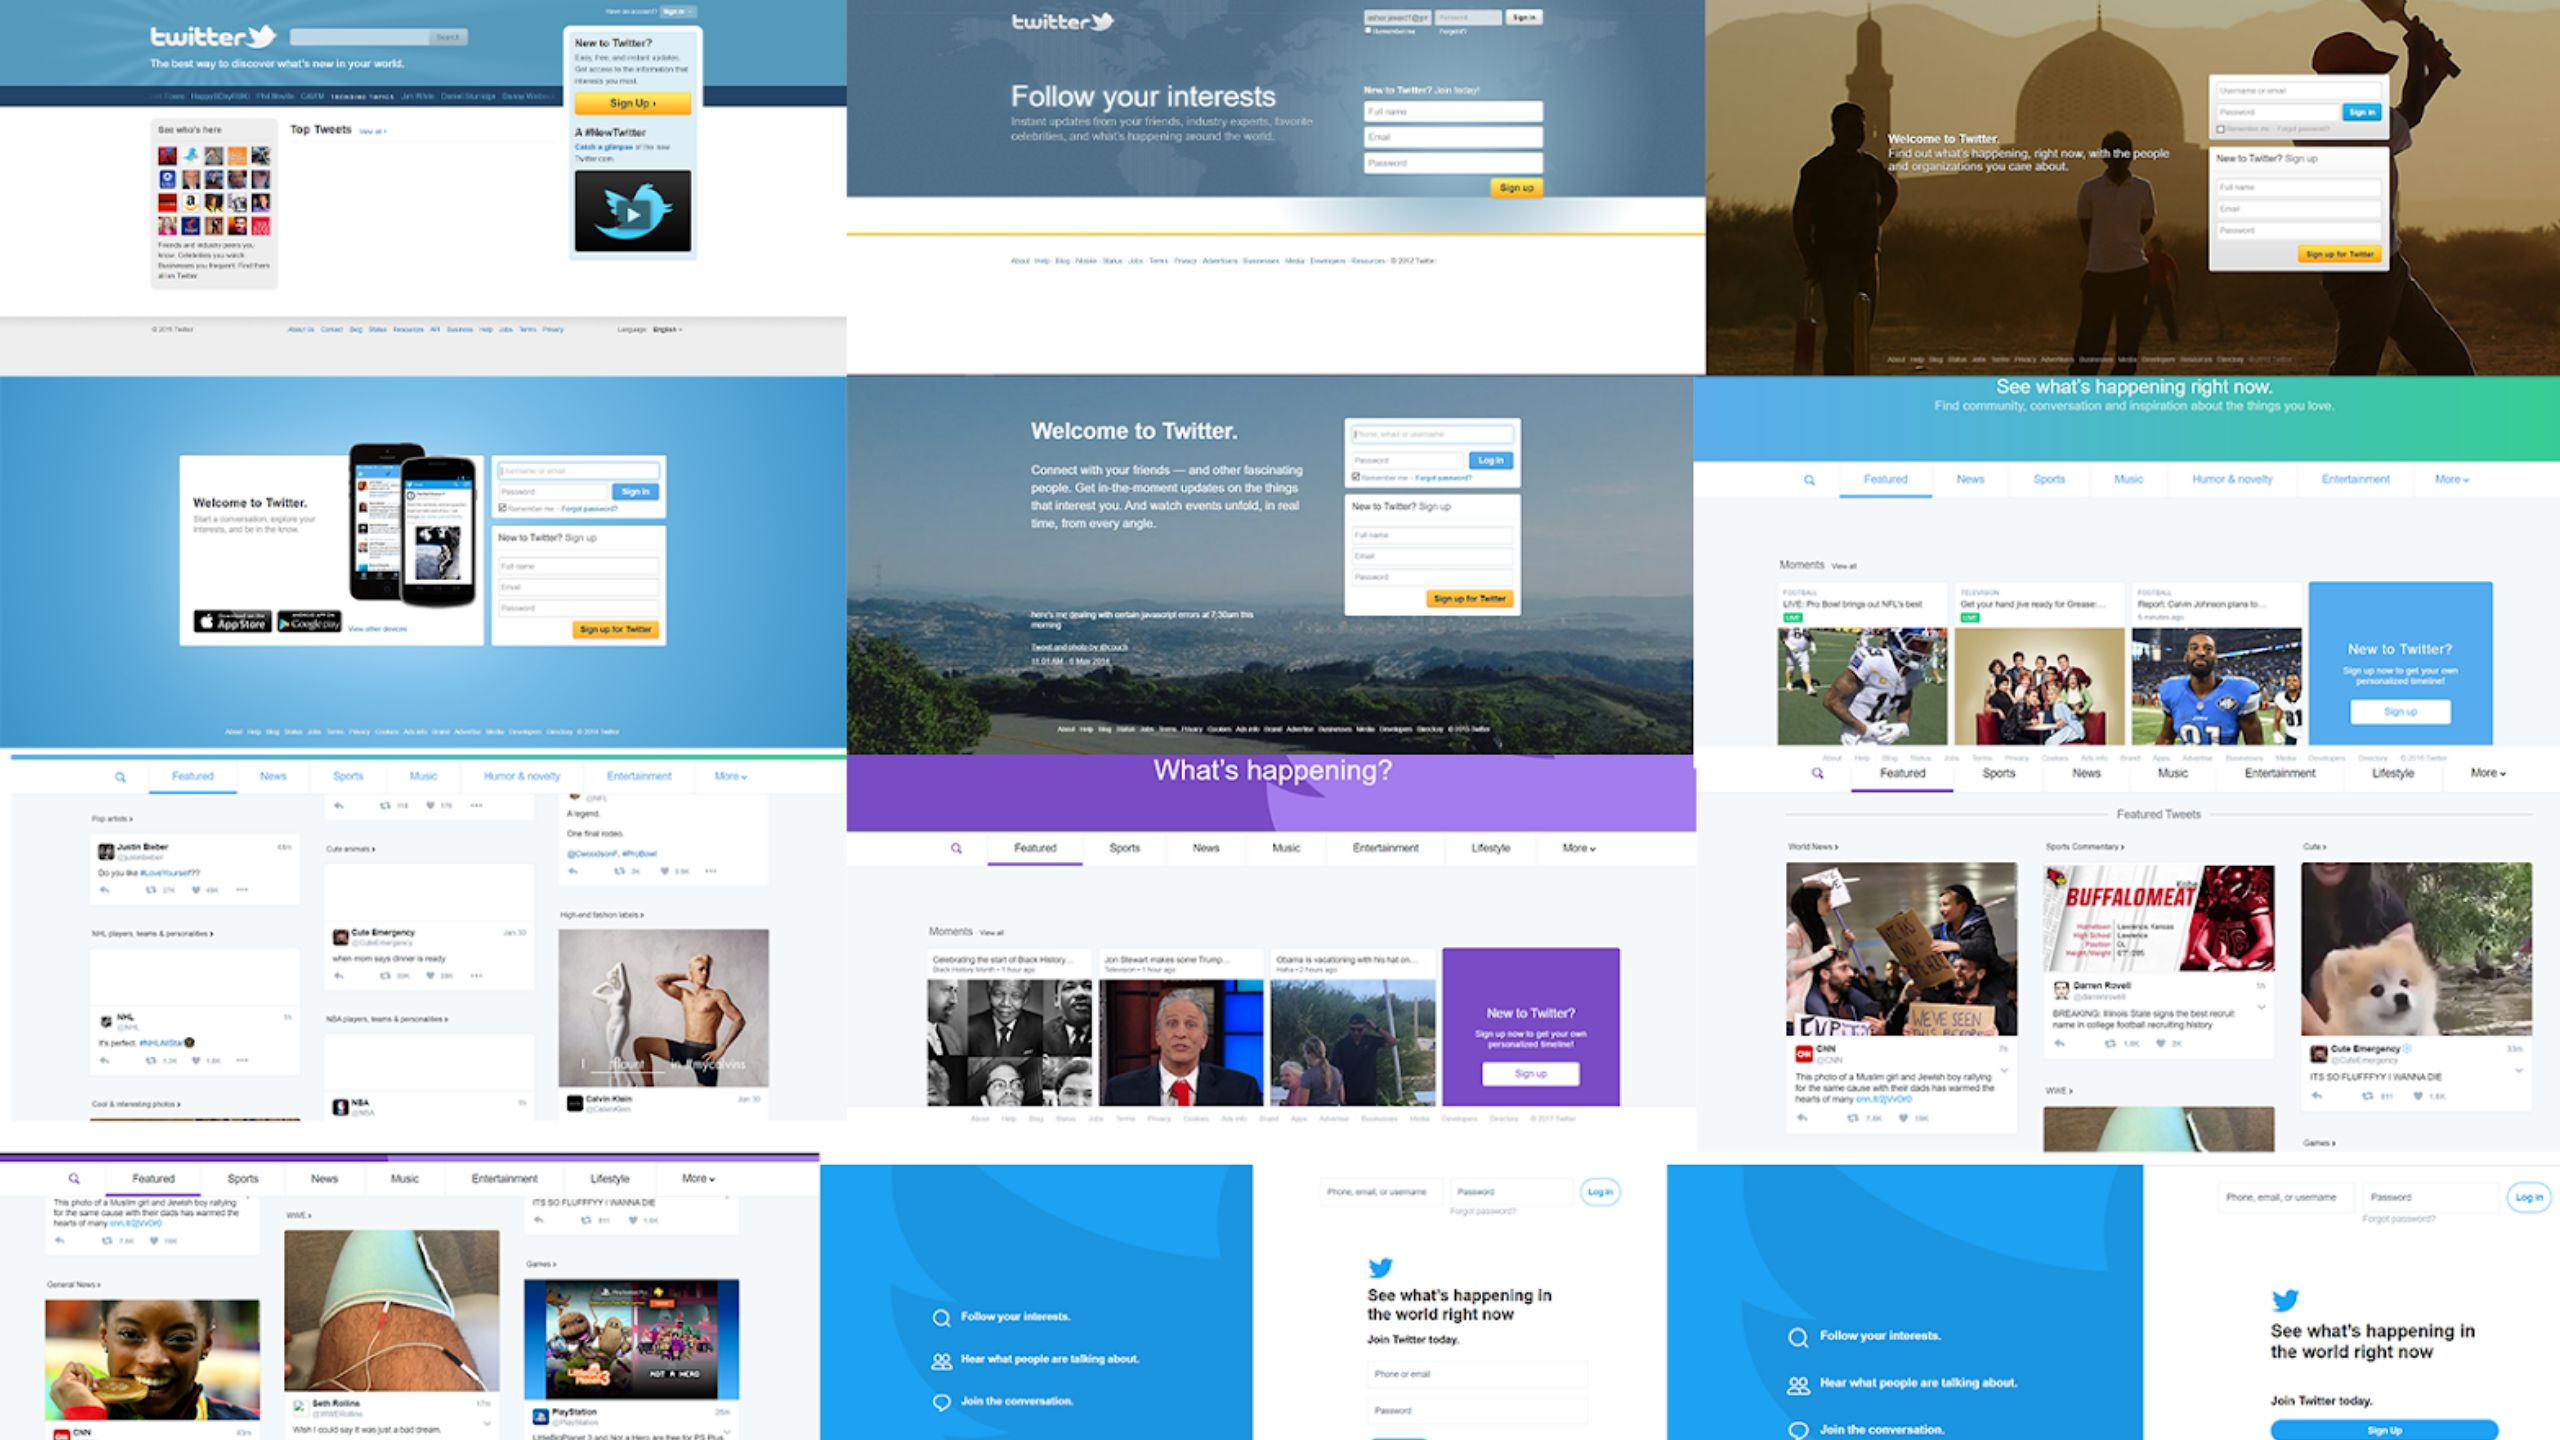 /how-the-twitter-homepage-has-changed-in-the-past-10-years-elk3z0t feature image